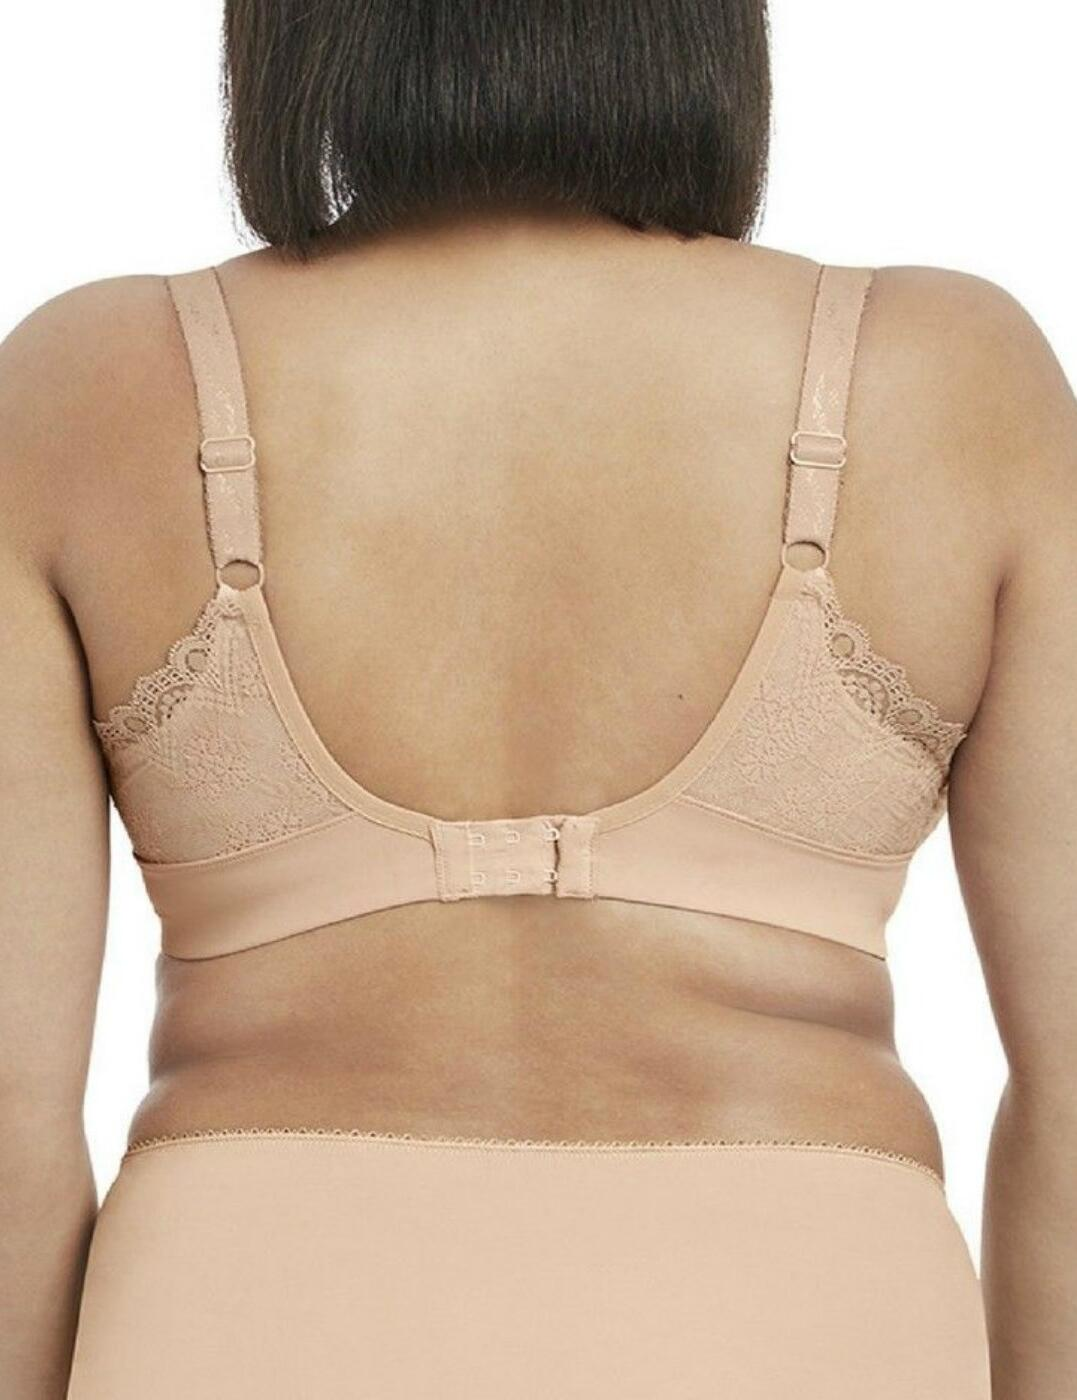 Elomi-Tia-Full-Coverage-Bra-4280-Underwired-Bandless-Supportive-Womens-Lingerie thumbnail 3